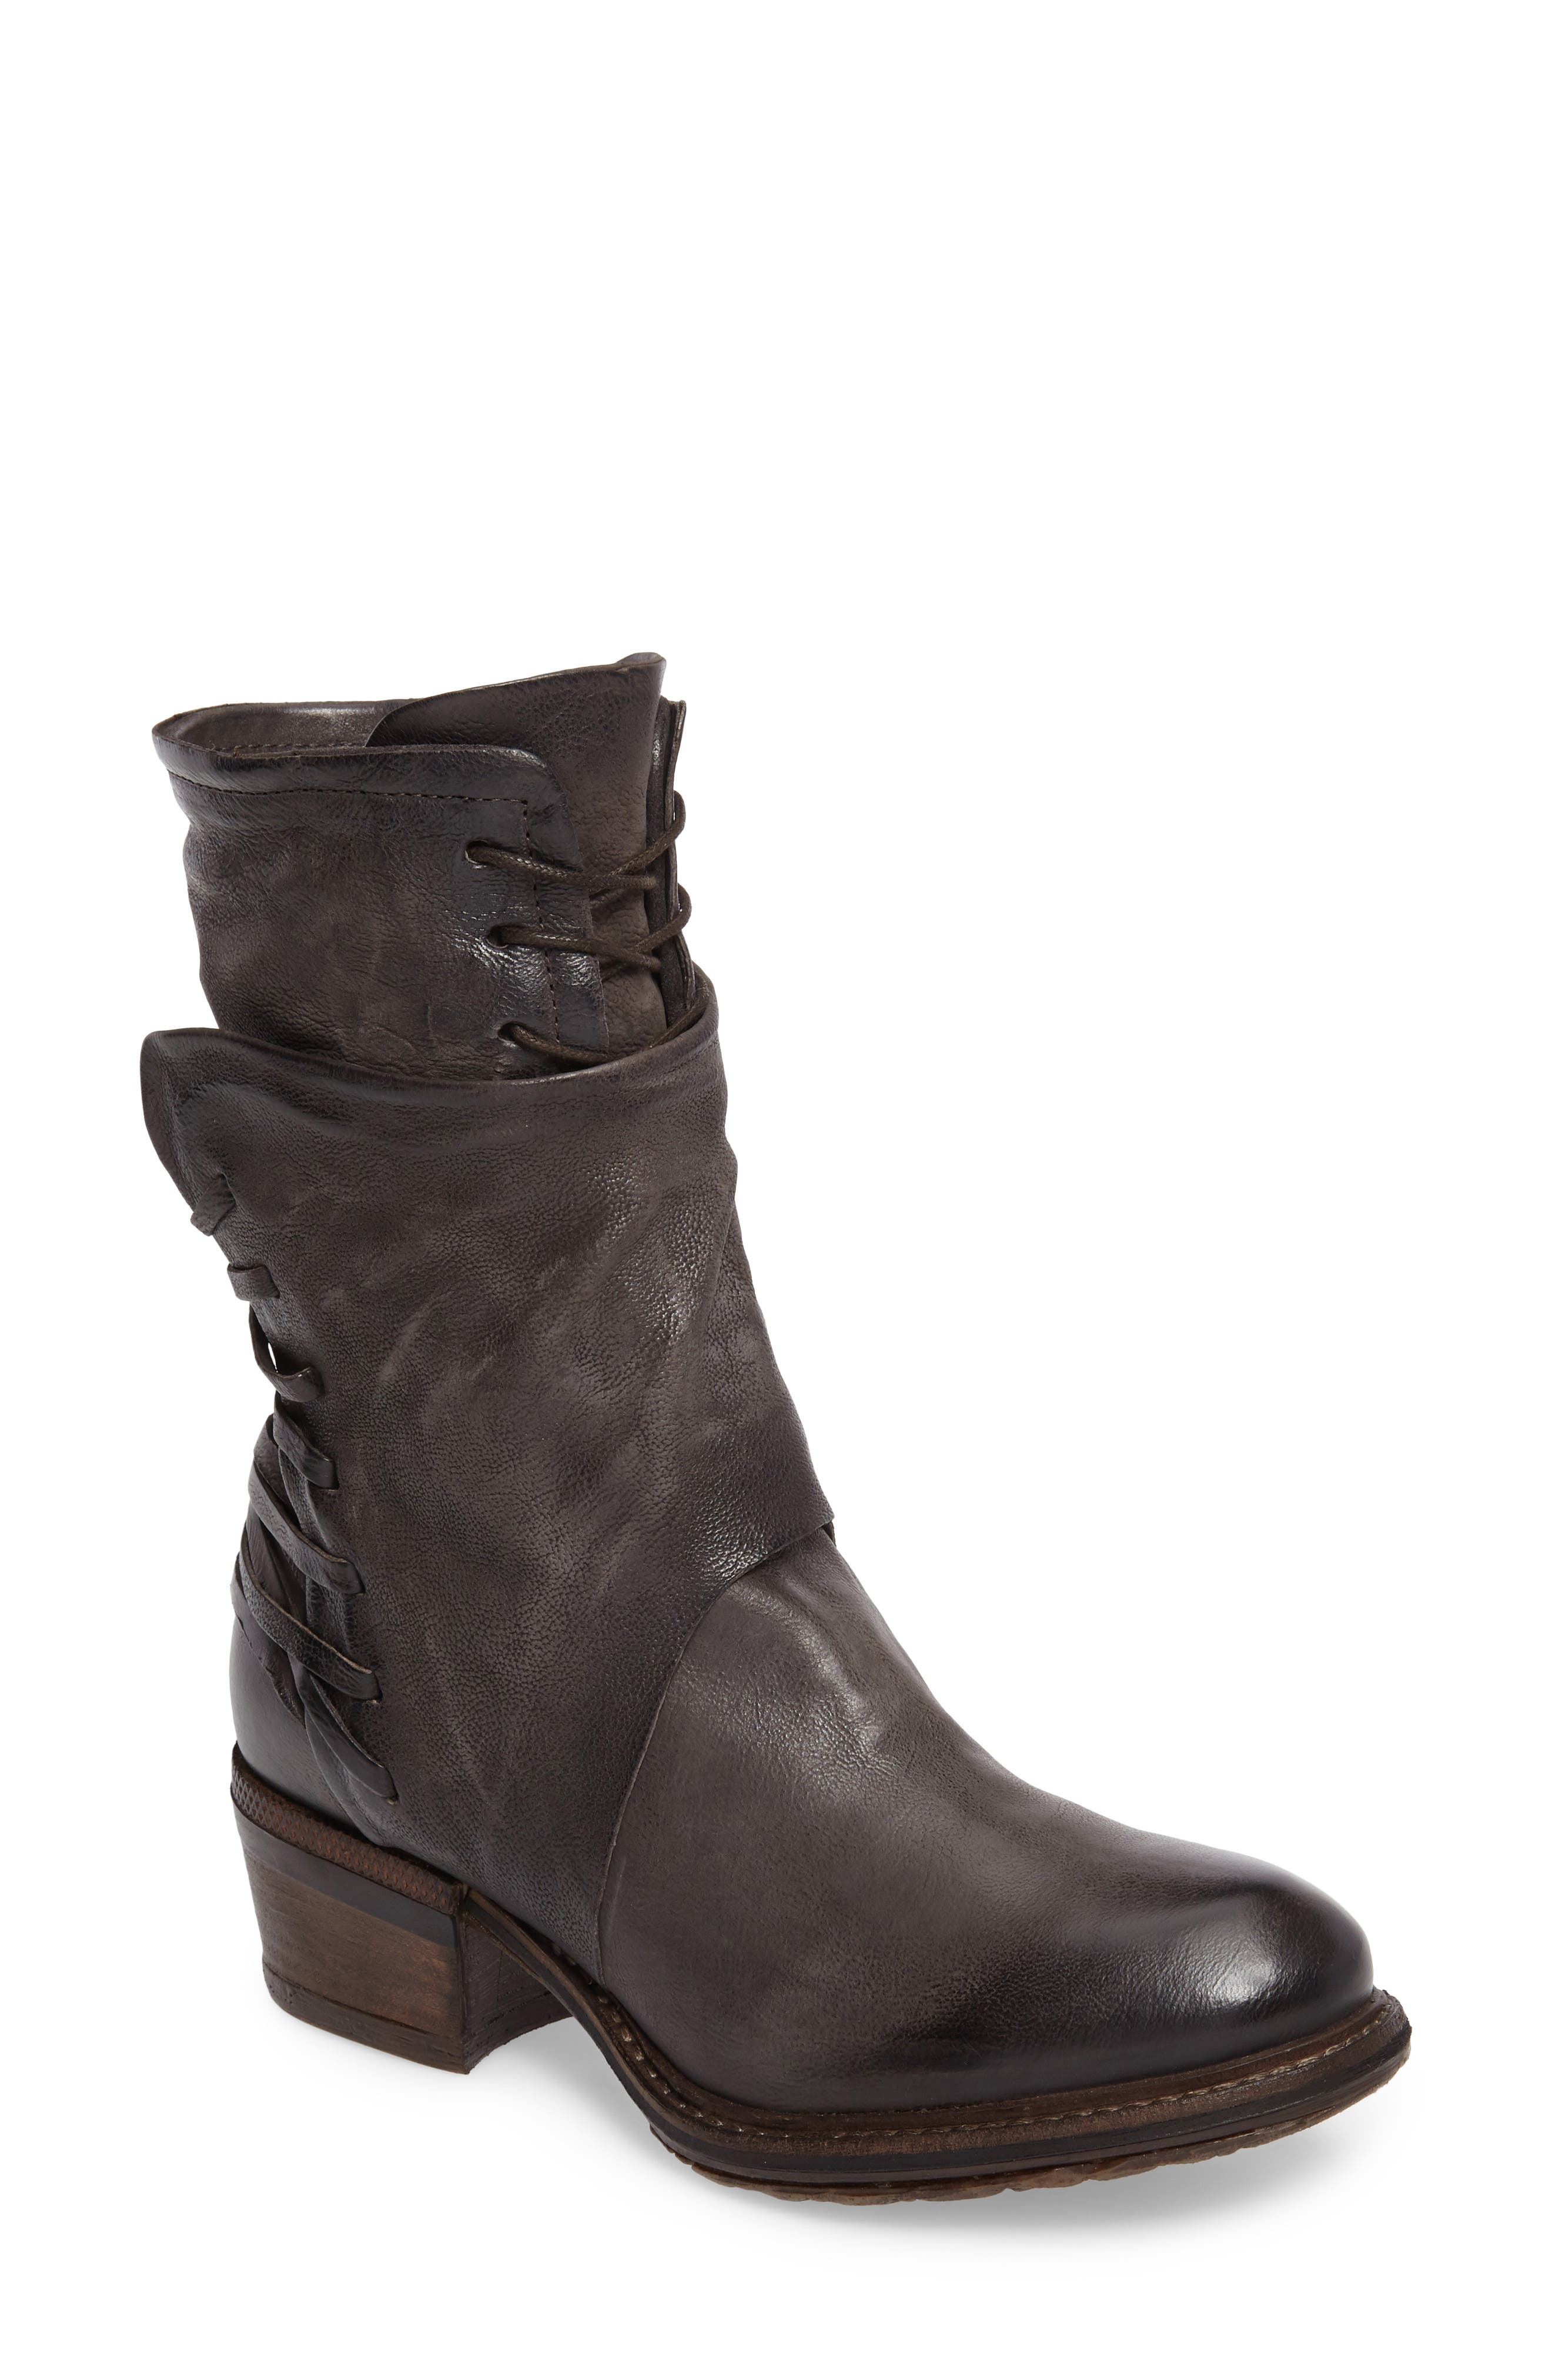 A.S. 98 Chet Boot,                         Main,                         color, 096